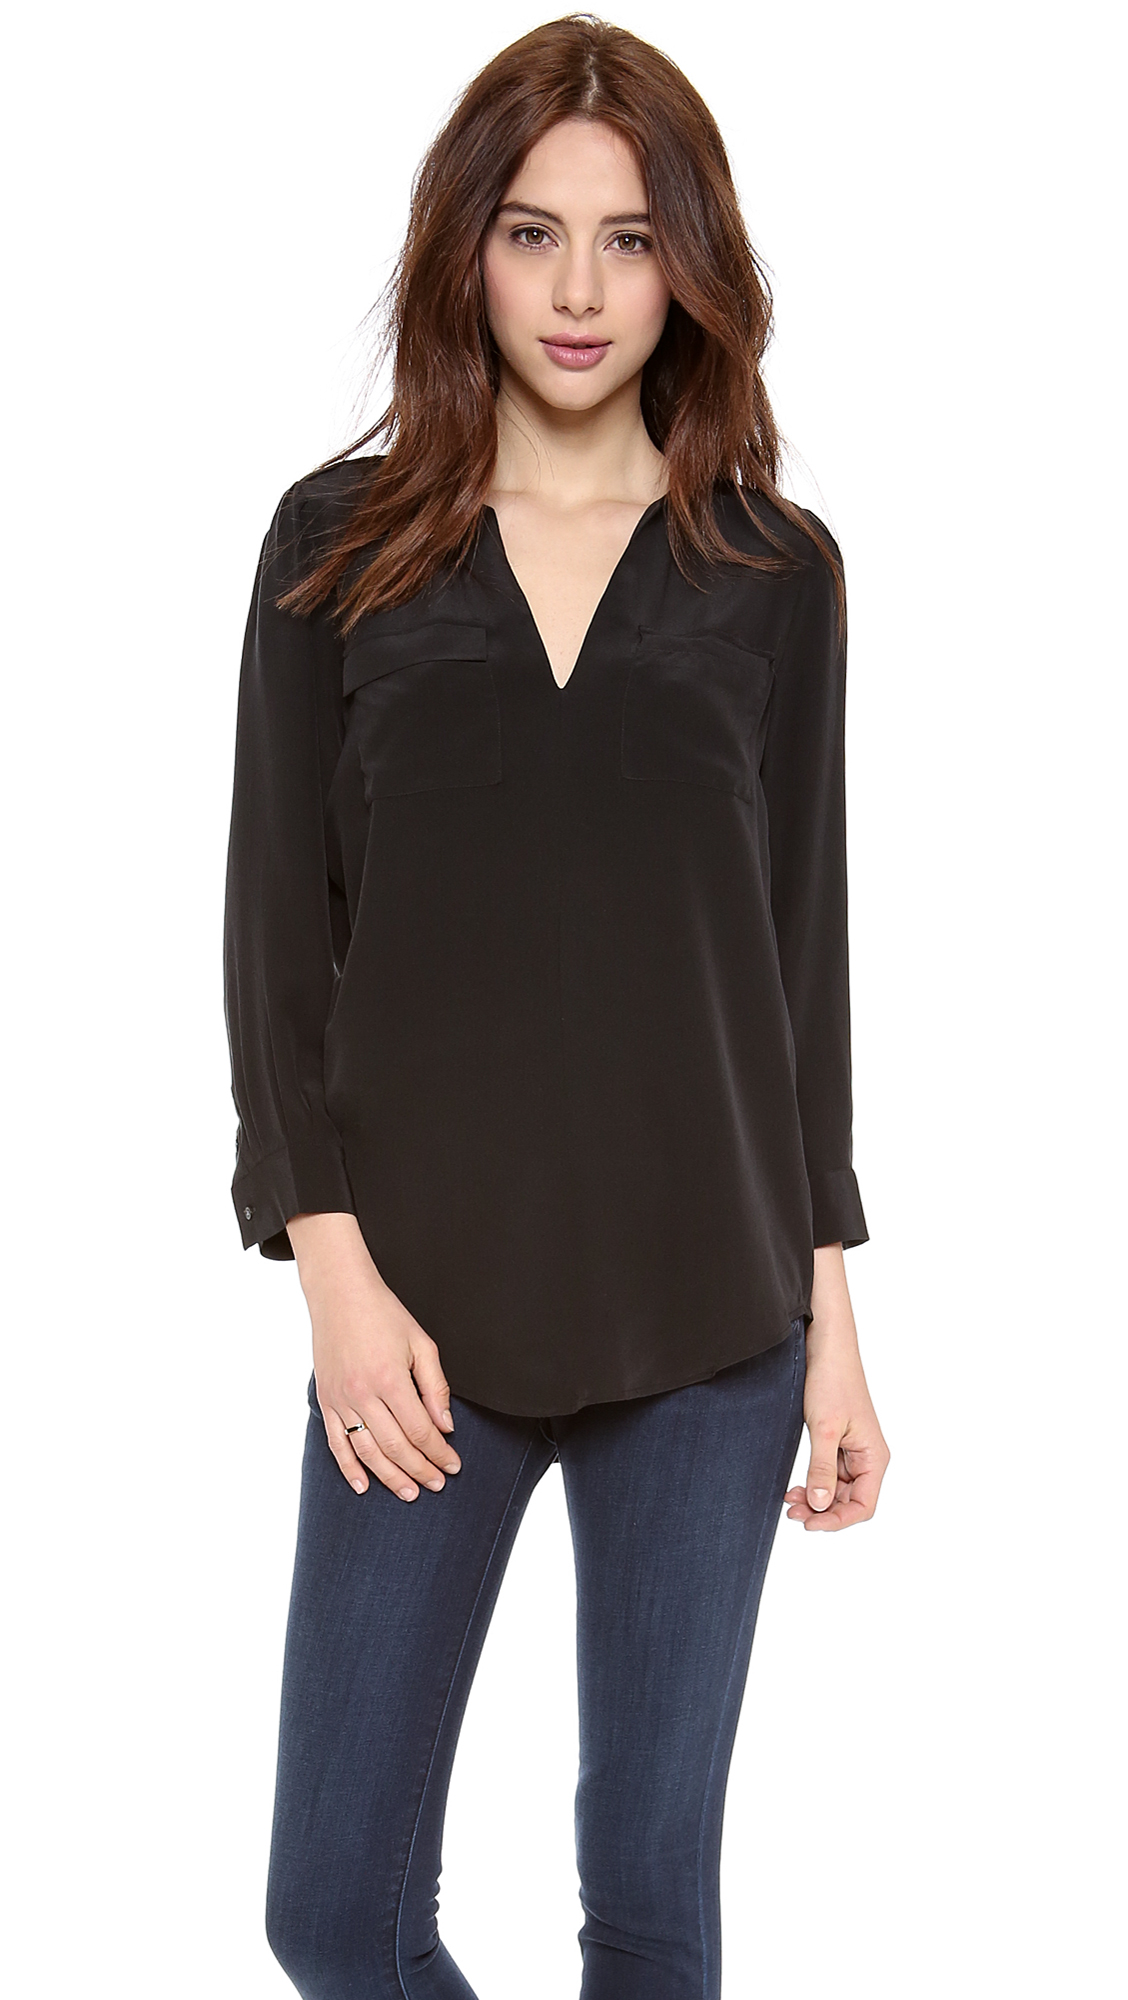 ee67225284a2d Joie Marlo Blouse